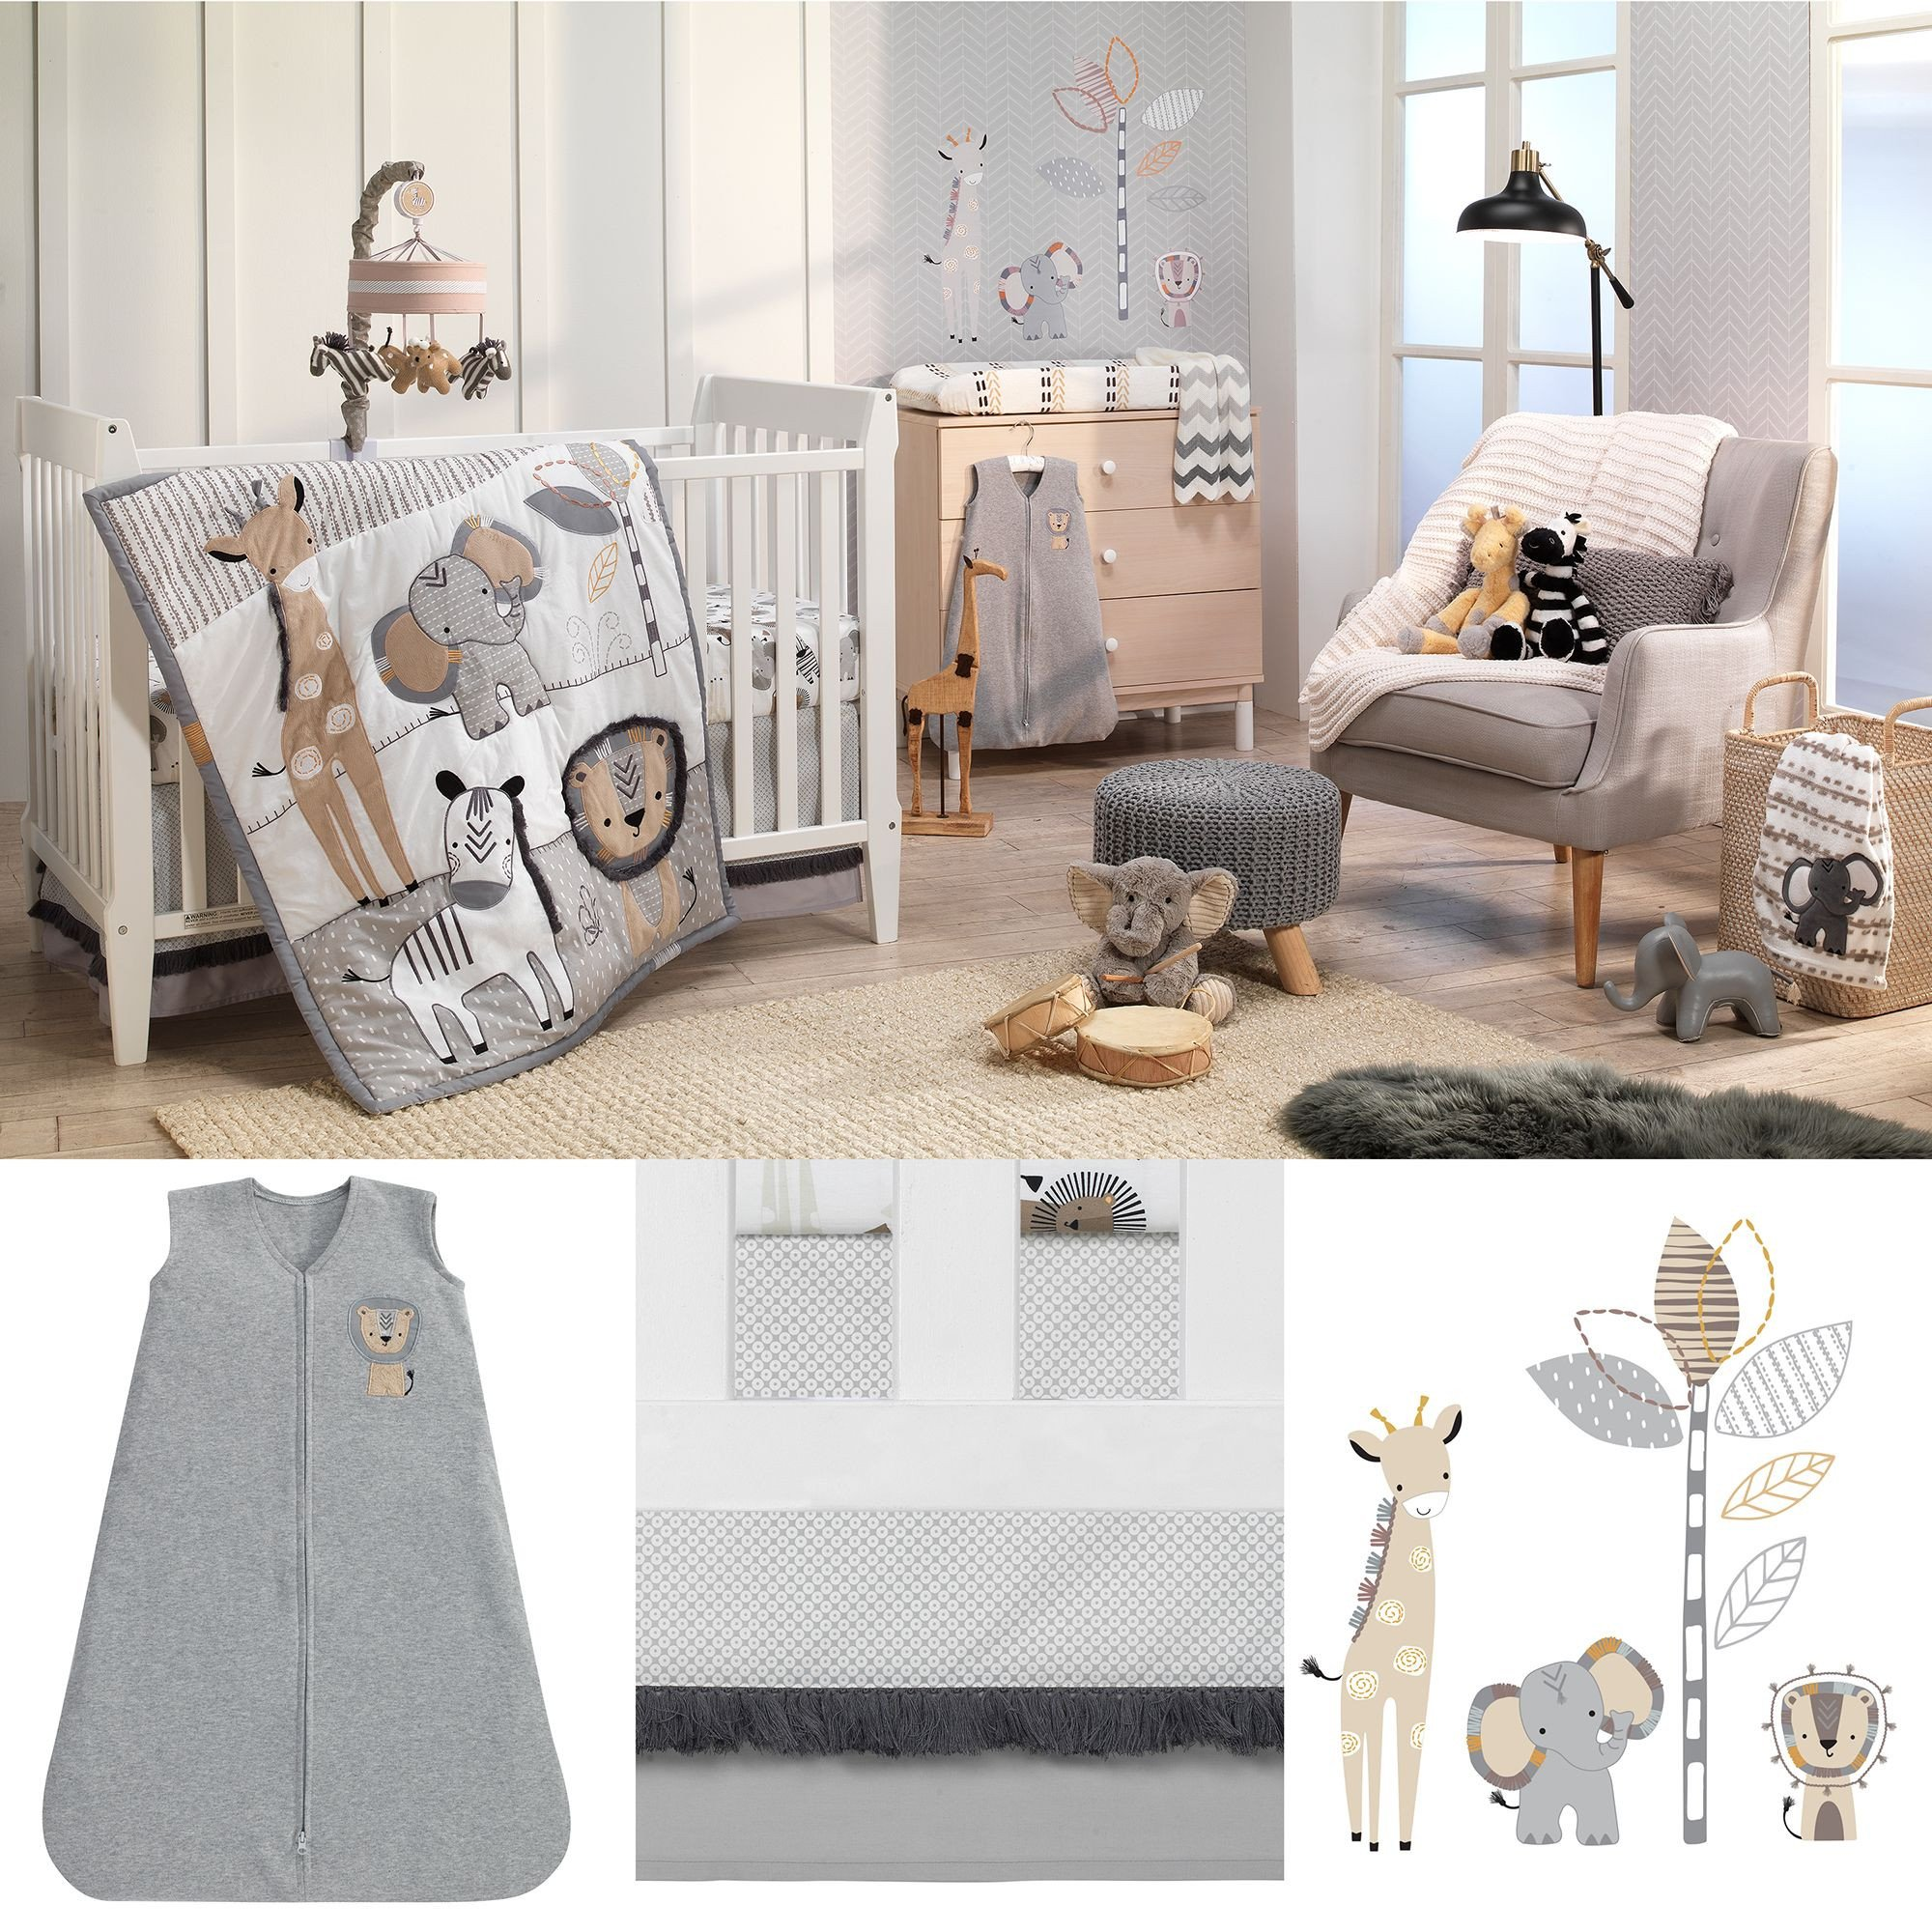 Baby Boy Bedroom Ideas Best Of Jungle Safari Gray Tan White Nursery 6 Piece Baby Crib